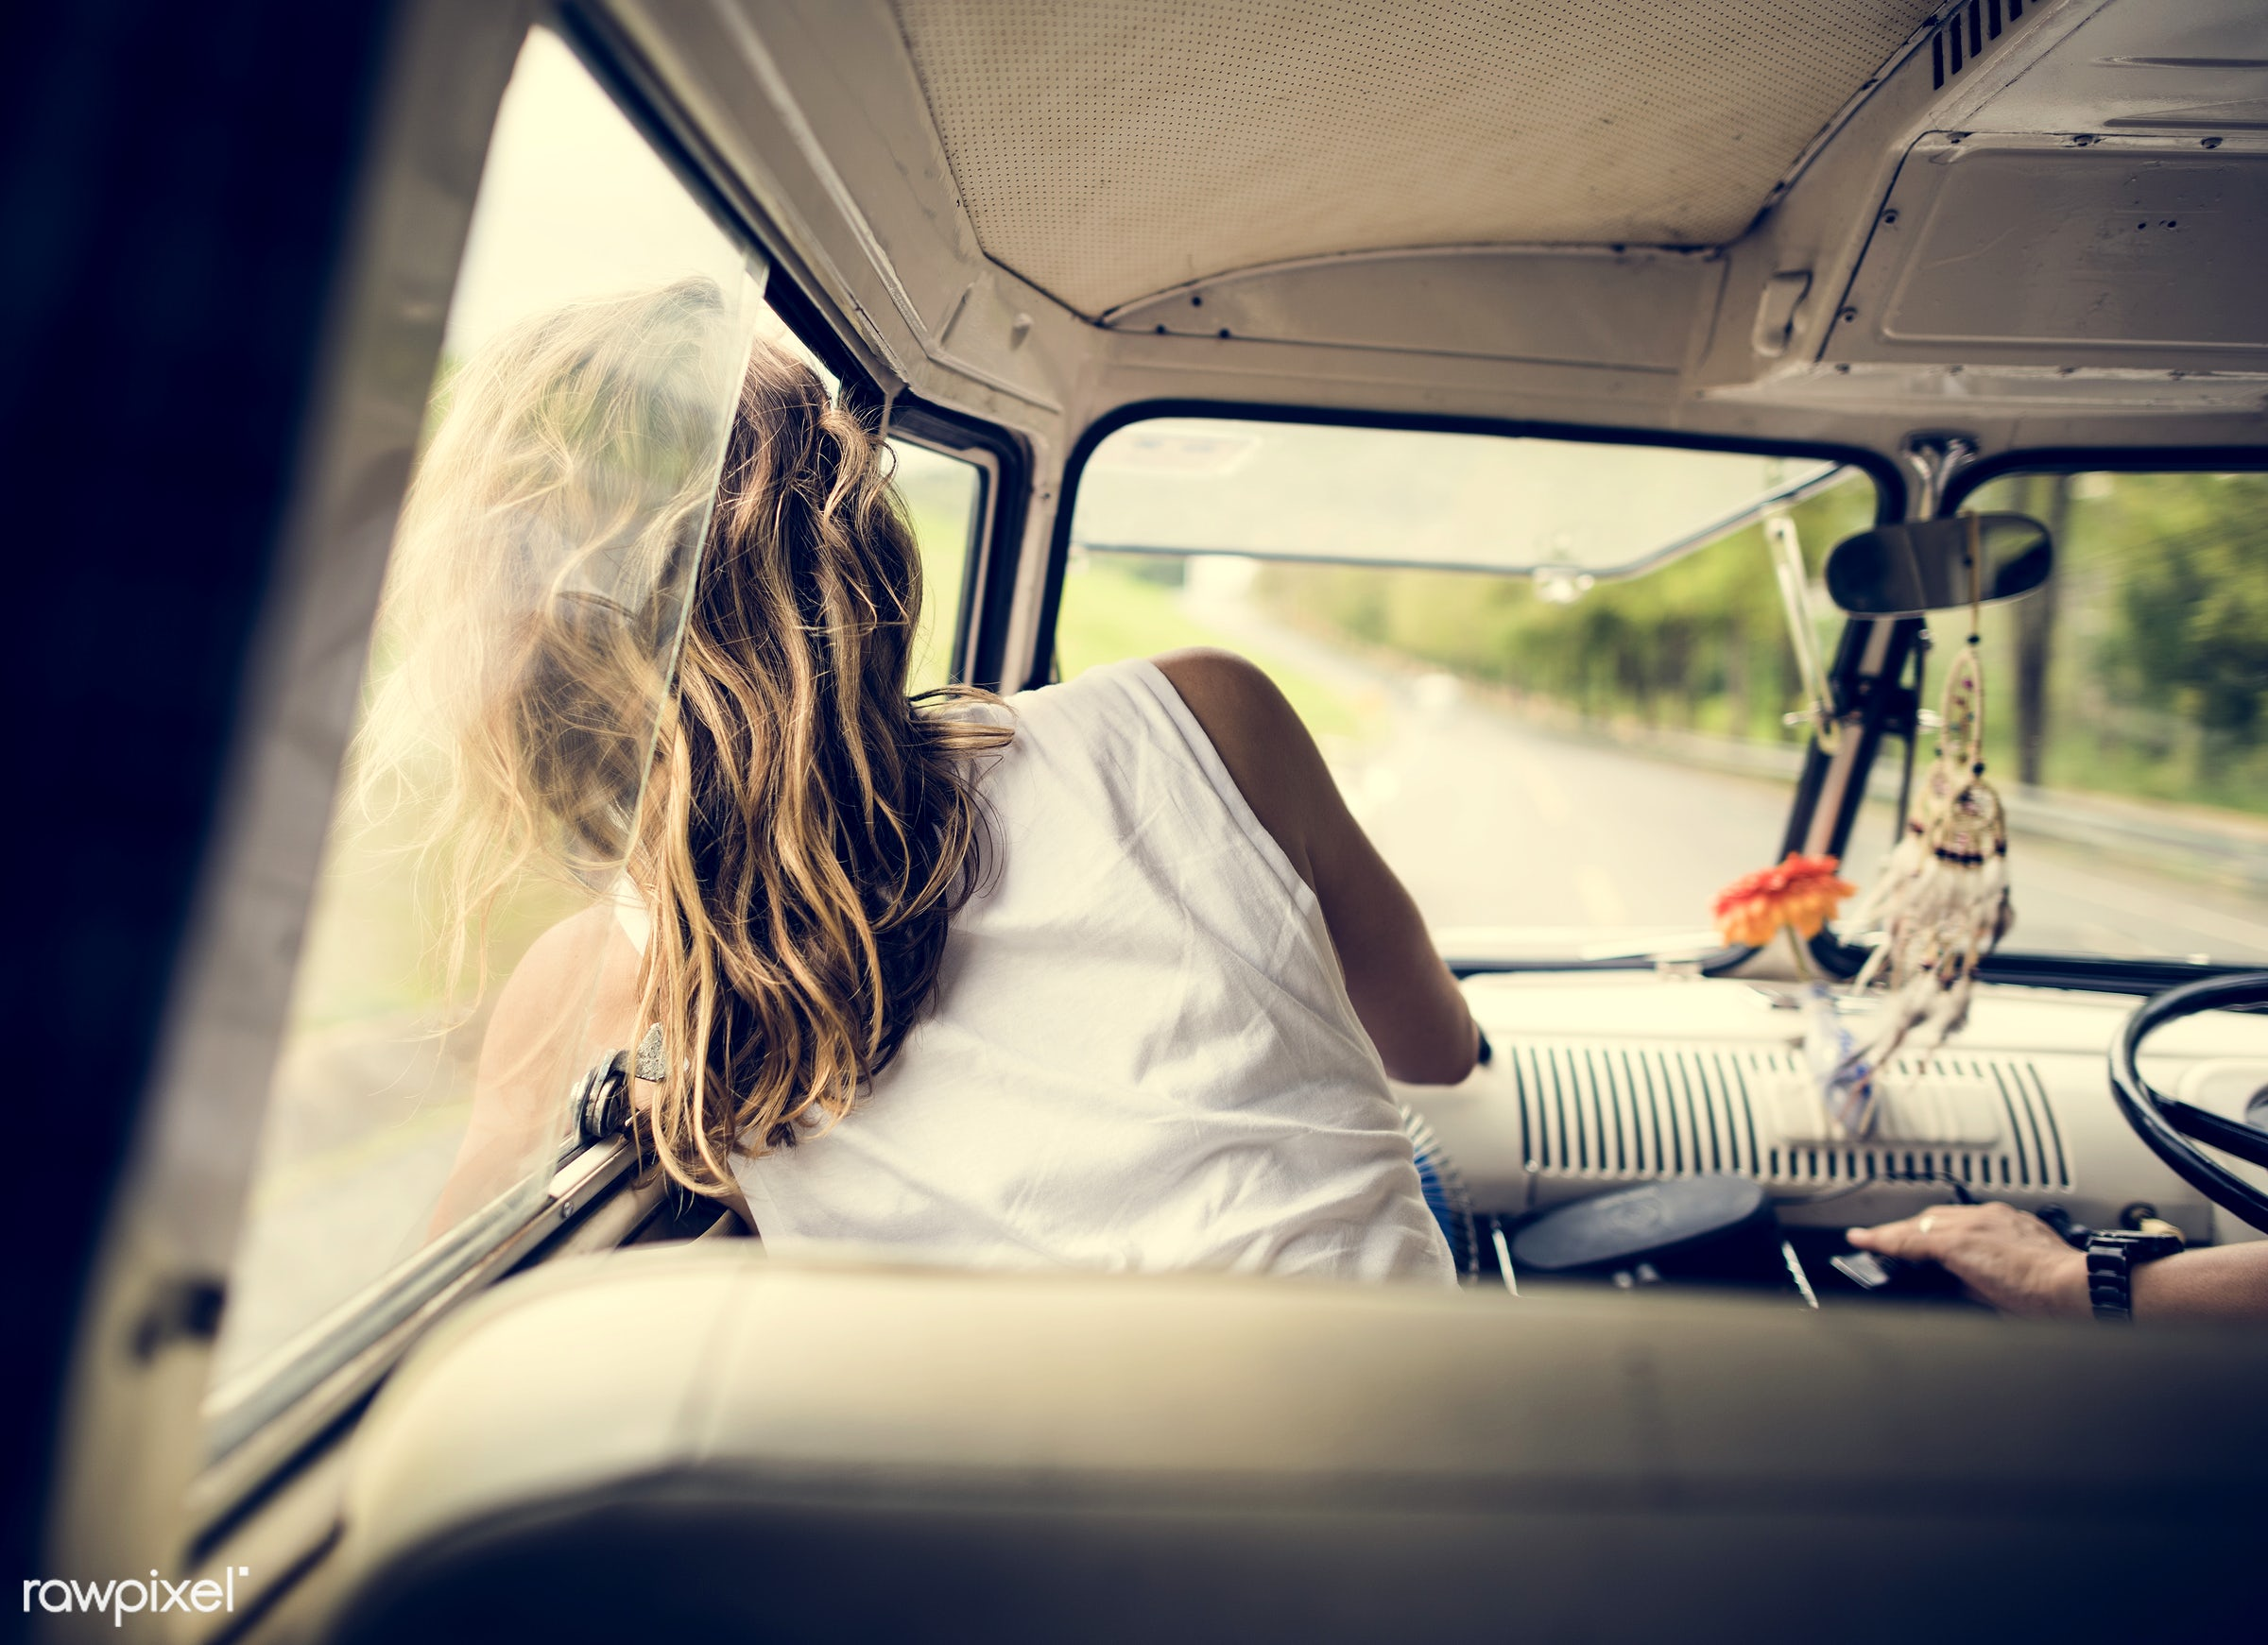 adult, adventure, attractive, beauty, blow, blowing, car, enjoy, enjoyment, female, front seat, fun, hair, happiness, head,...